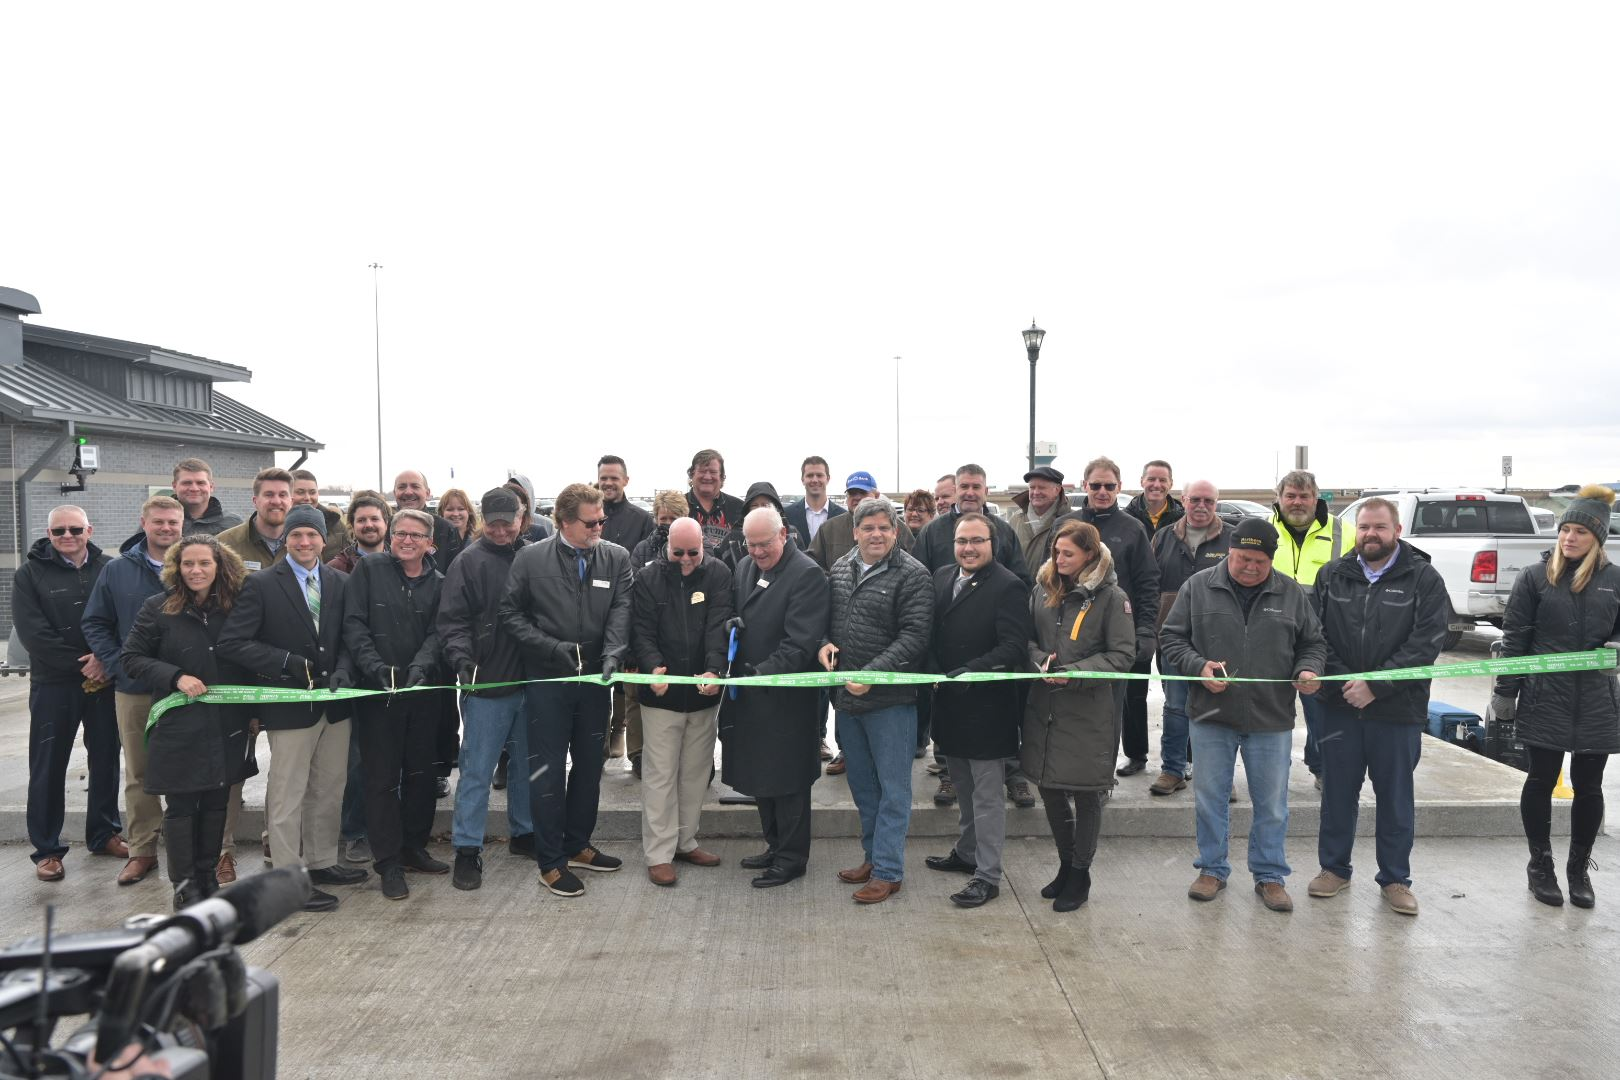 Officials cut the ribbon on the grand opening of the Sheyenne Street construction